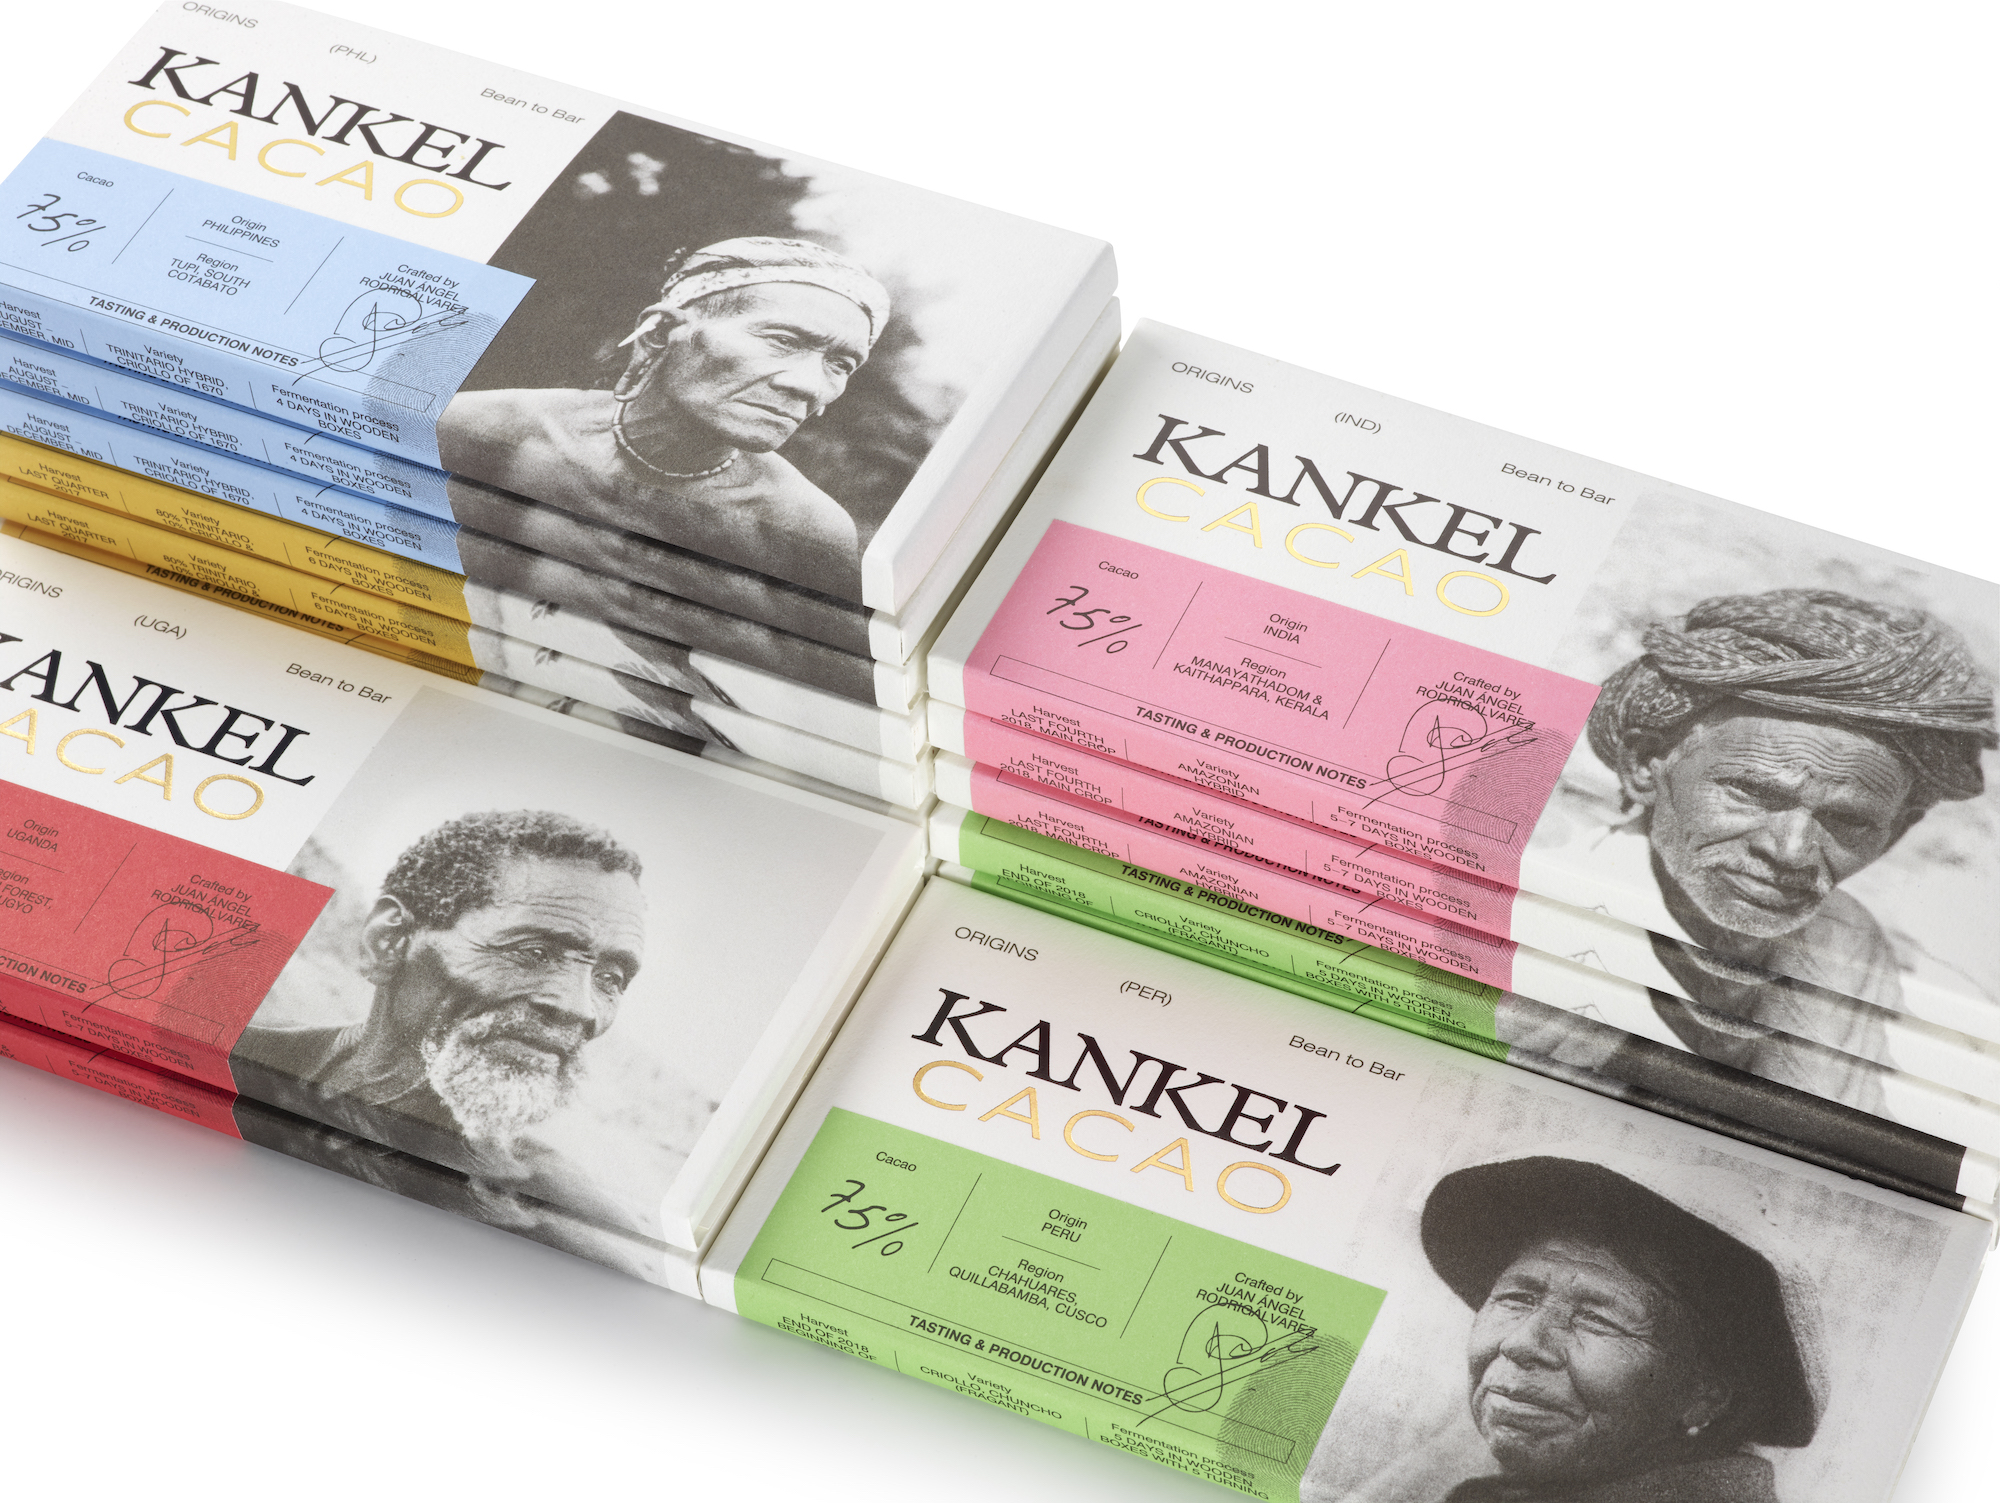 KANKEL CACAO Exploring and Discovering the World of Cacao